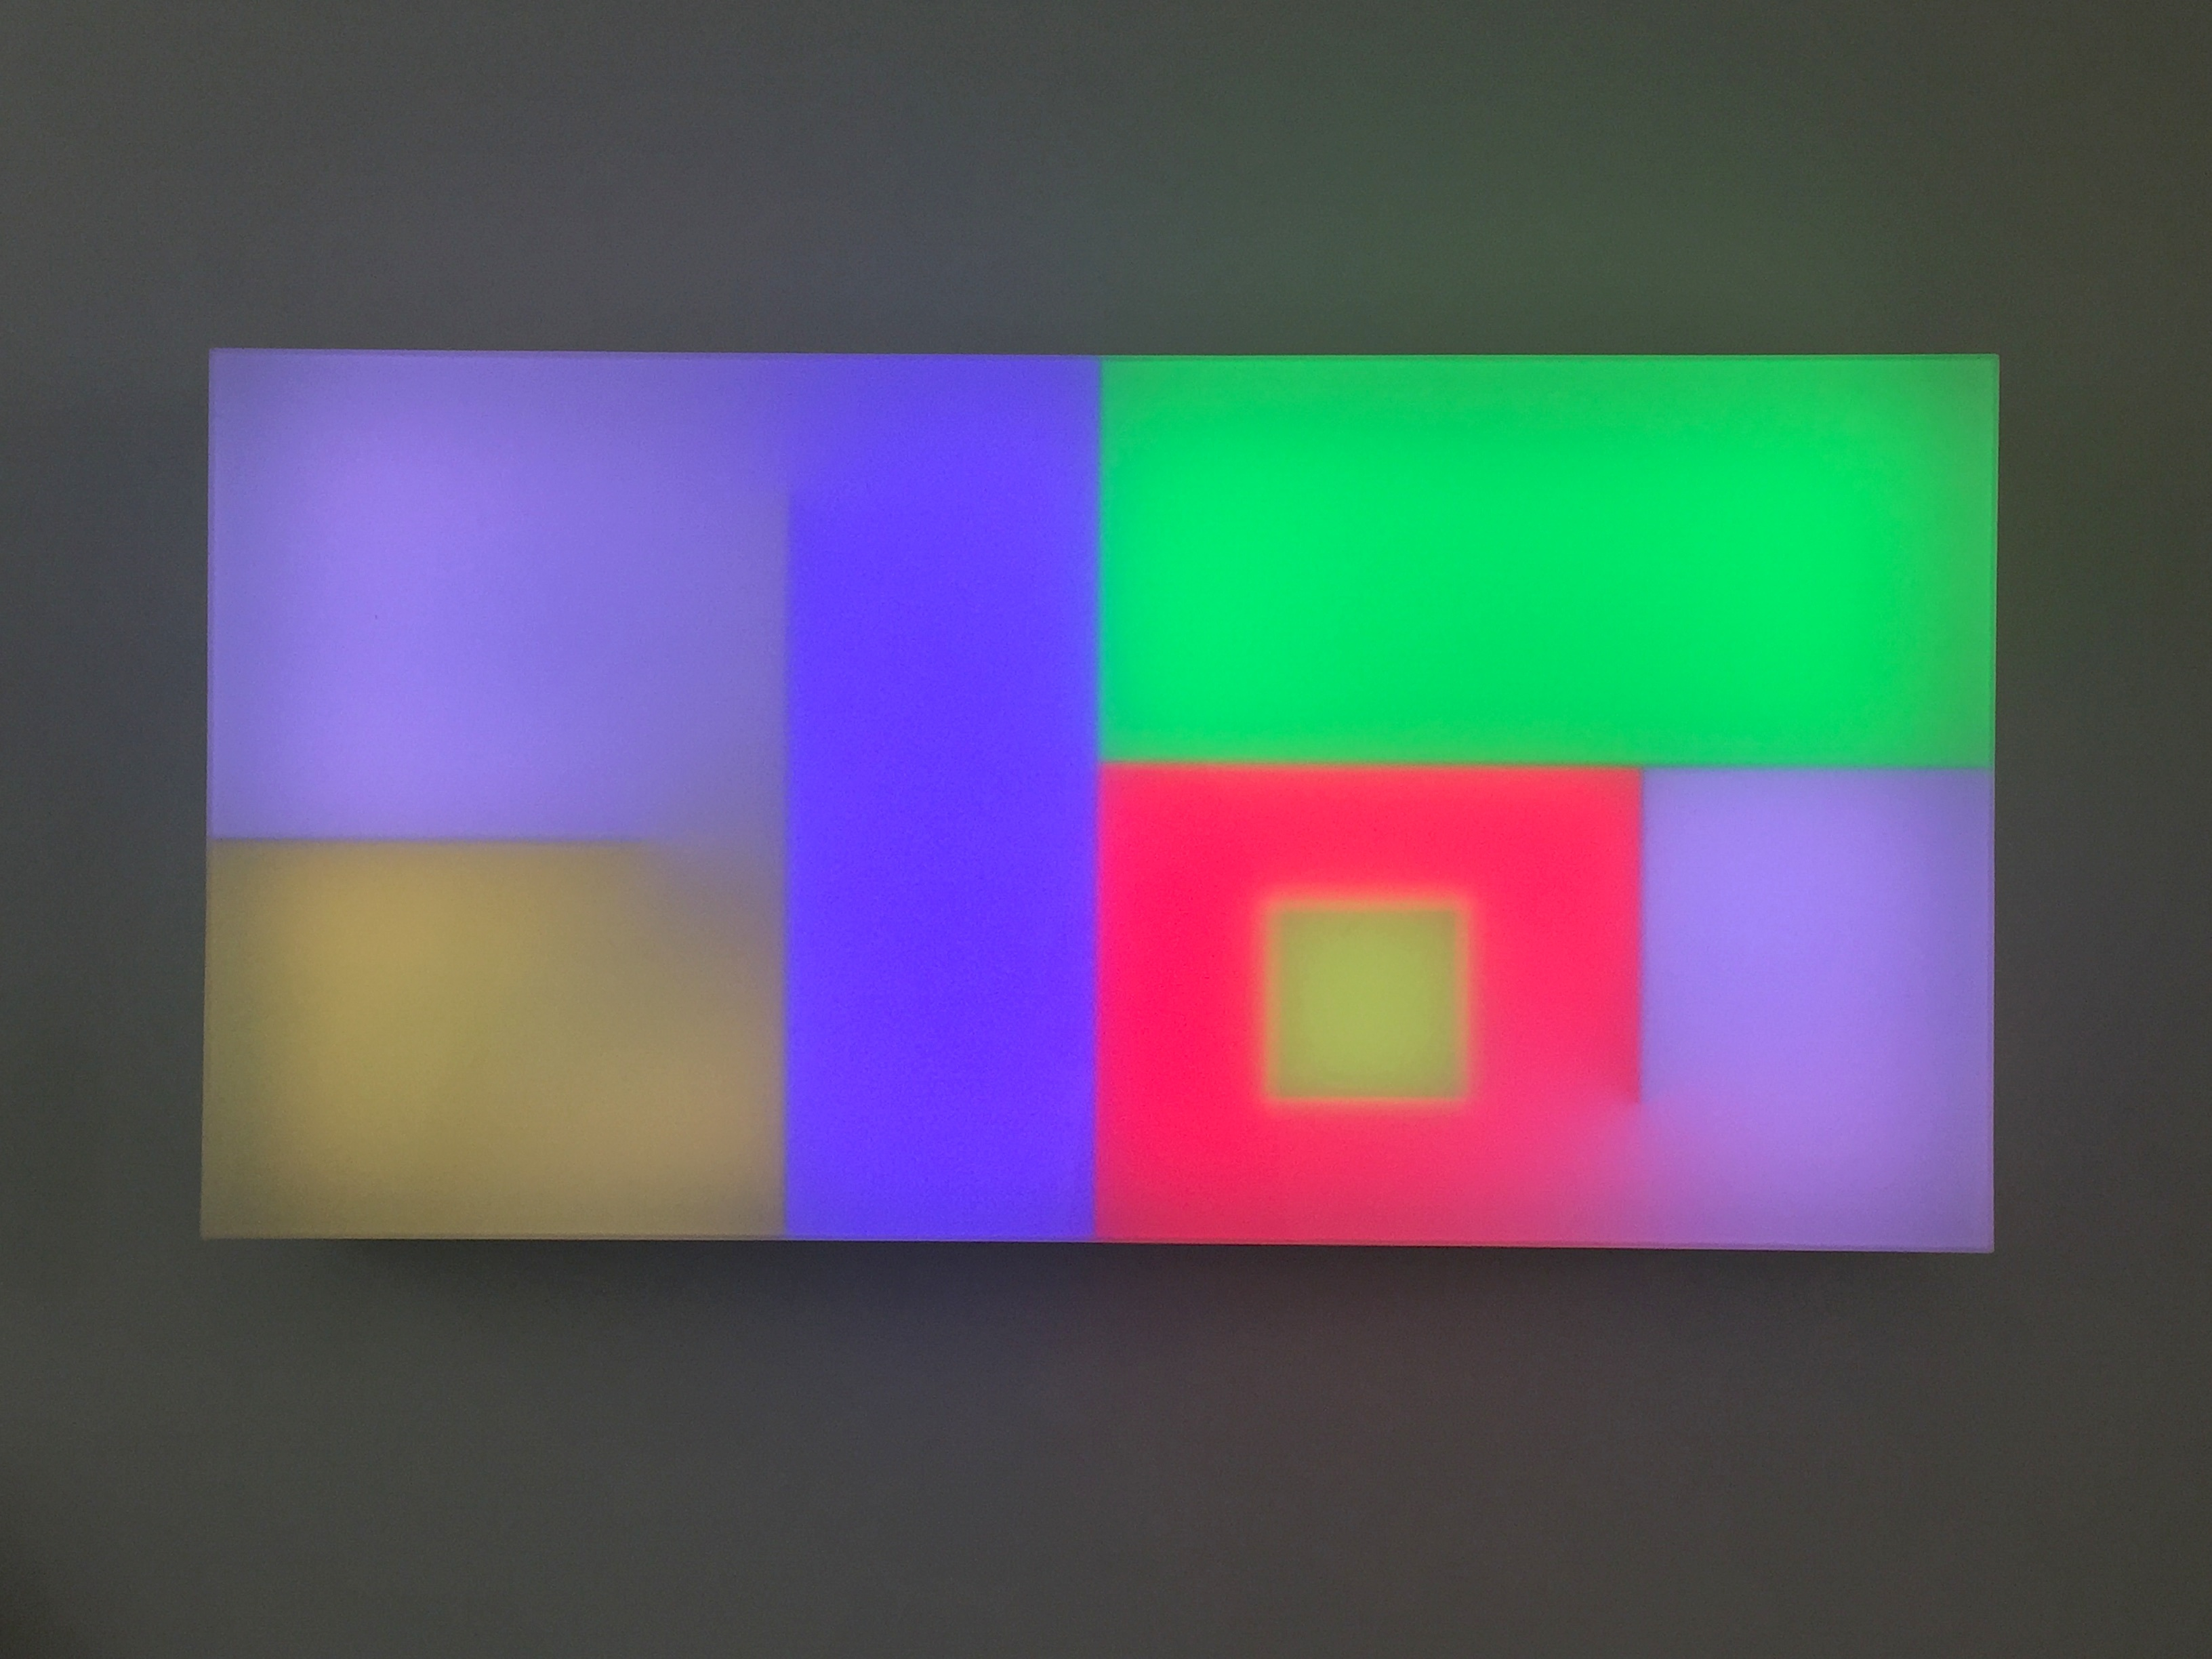 Brian Eno  Chord Tritone, 2017  Light box: LED lights, perspex, wood, usb stick  65 x 130 x 19 cm